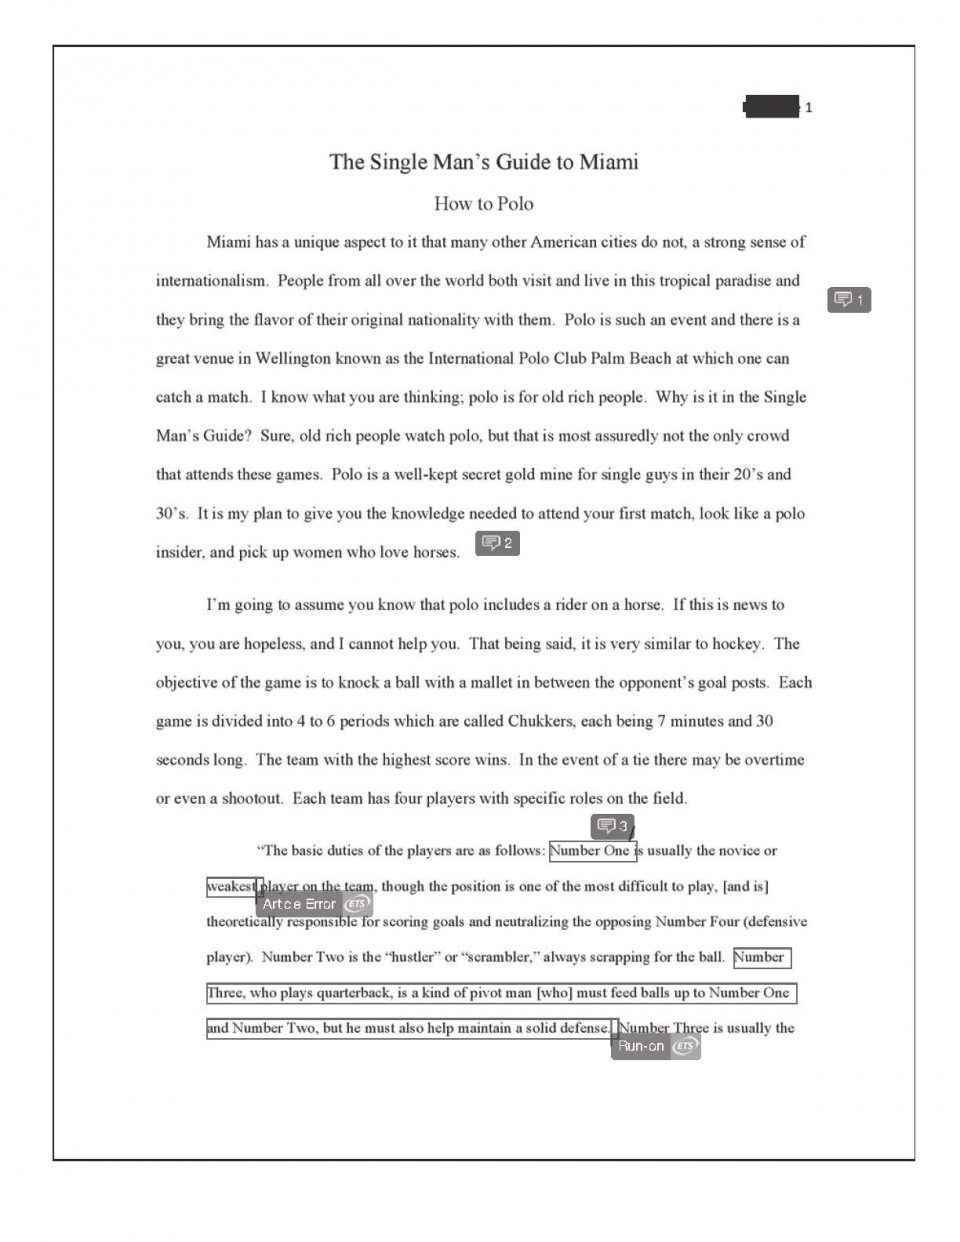 007 Informative Essay Kinds Of Writing Types Essays The Center In Hindi Final How To Polo Redacted P Pdf Task Slideshare Ppt Withs Wikipedia Dreaded Graphic Organizer Prompts Middle School 3rd Grade 960